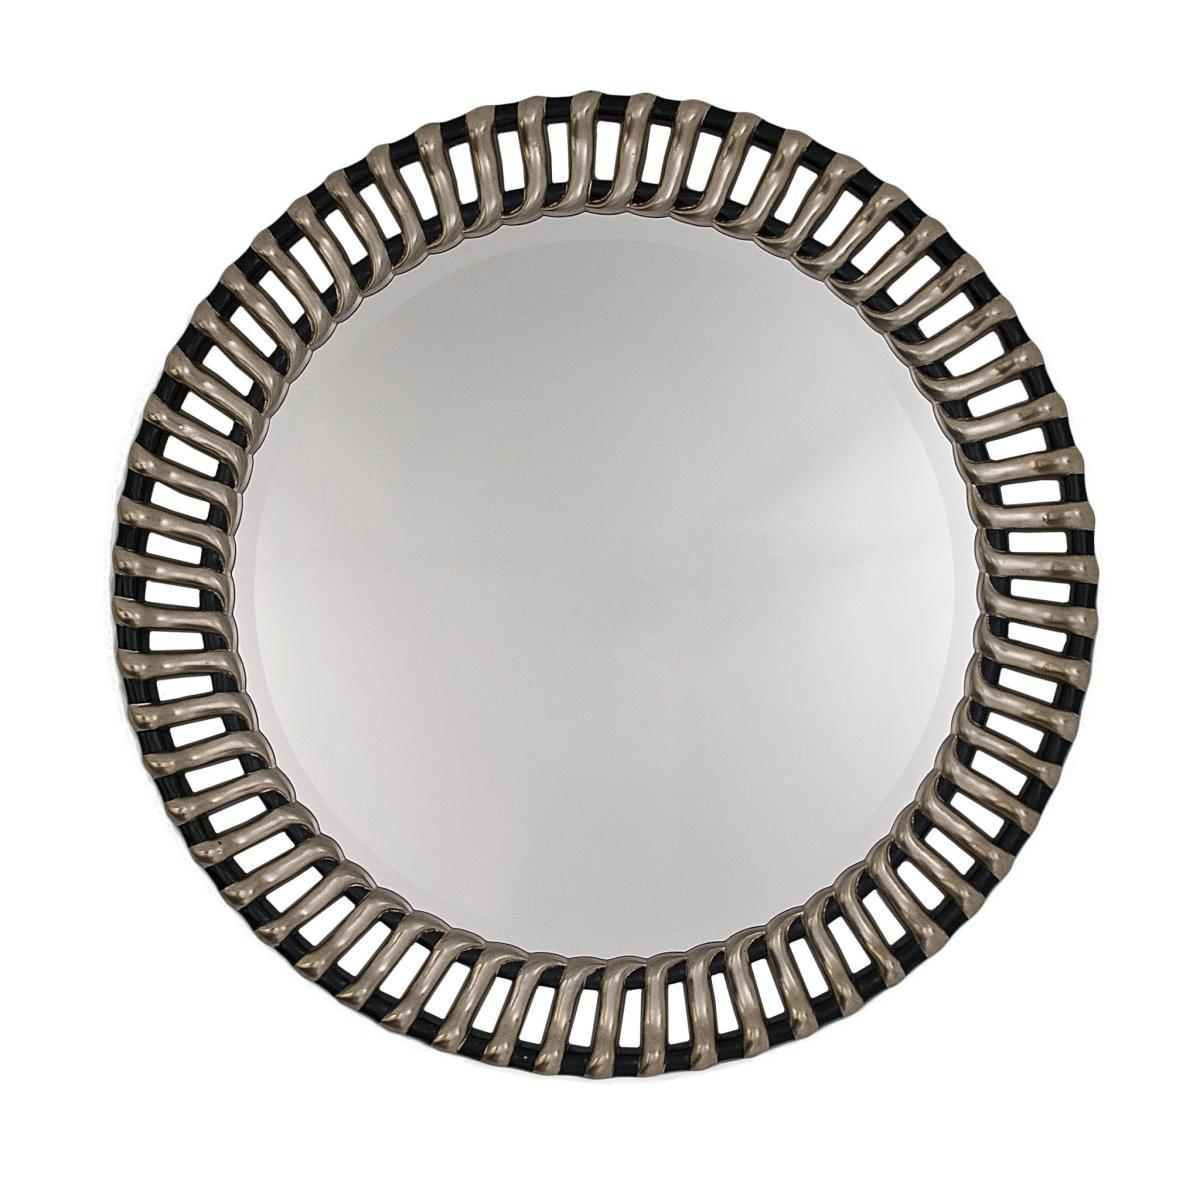 Round Ribbed Framed Silver And Black Bevelled Wall Mirror With Regard To Round Bevelled Mirror (Image 15 of 20)